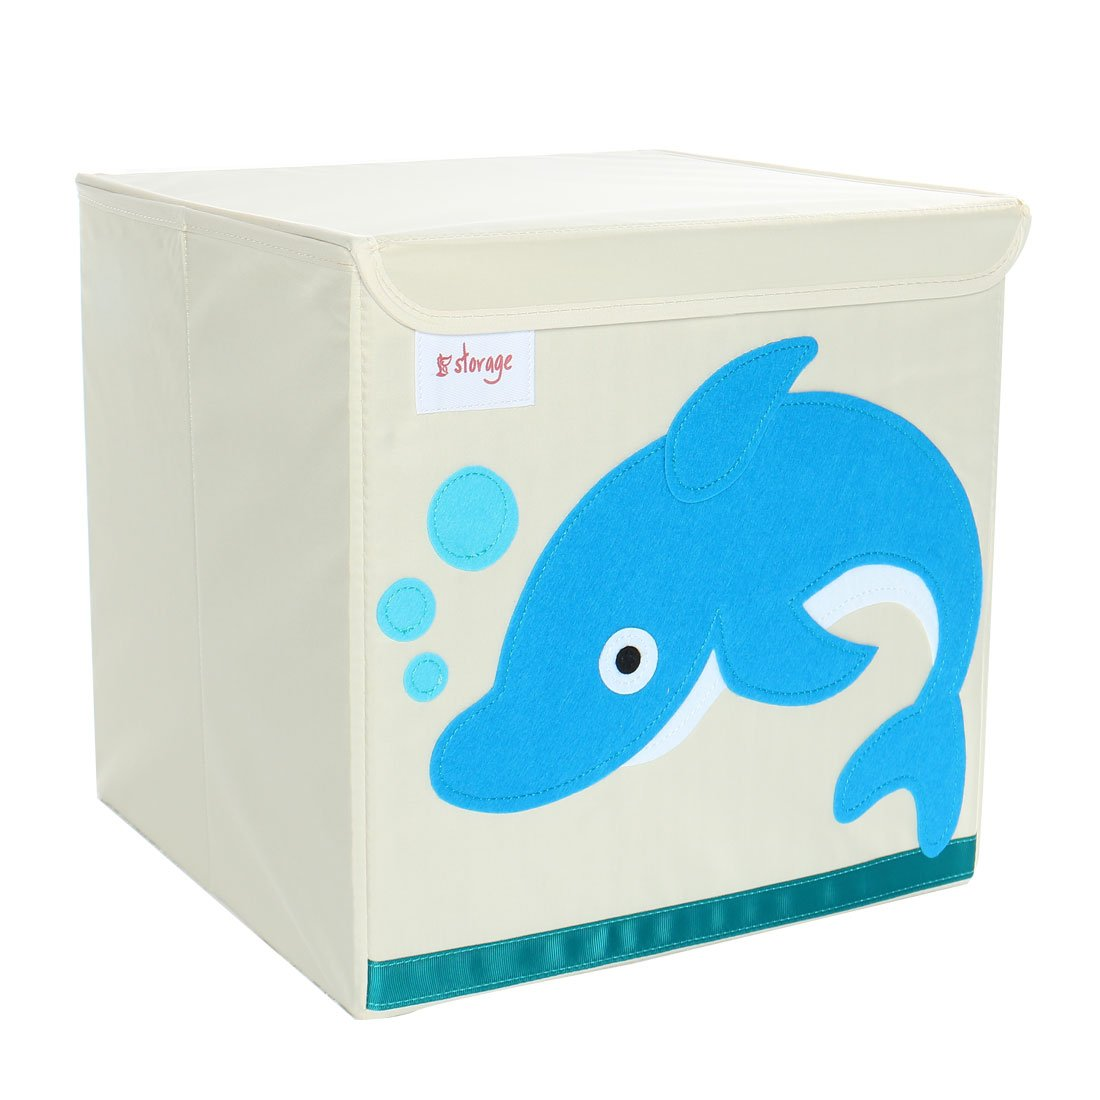 PiccoCasa Foldable Toy Storage Bins Square Cartoon Animal Nonwovens Storage Box Eco-Friendly Fabric Storage Cubes Organizer for Bedroom Playroom Lid Blue Dolphin Pattern 13''x13''x13.6''